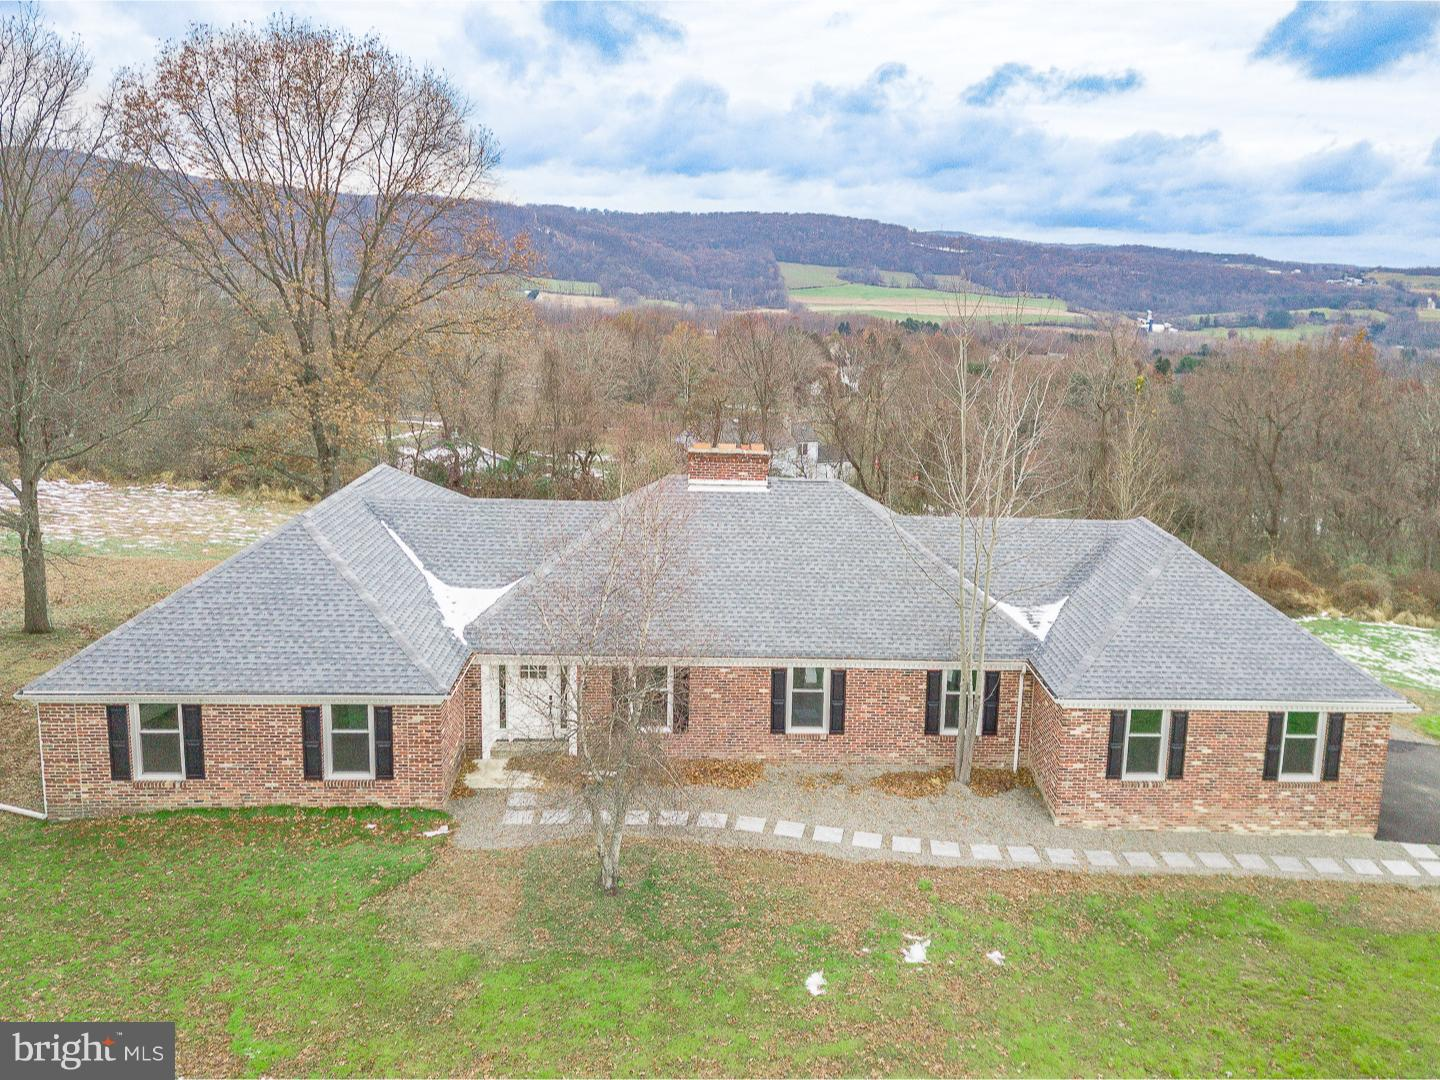 515 SUMMIT LANE, RIEGELSVILLE, PA 18077